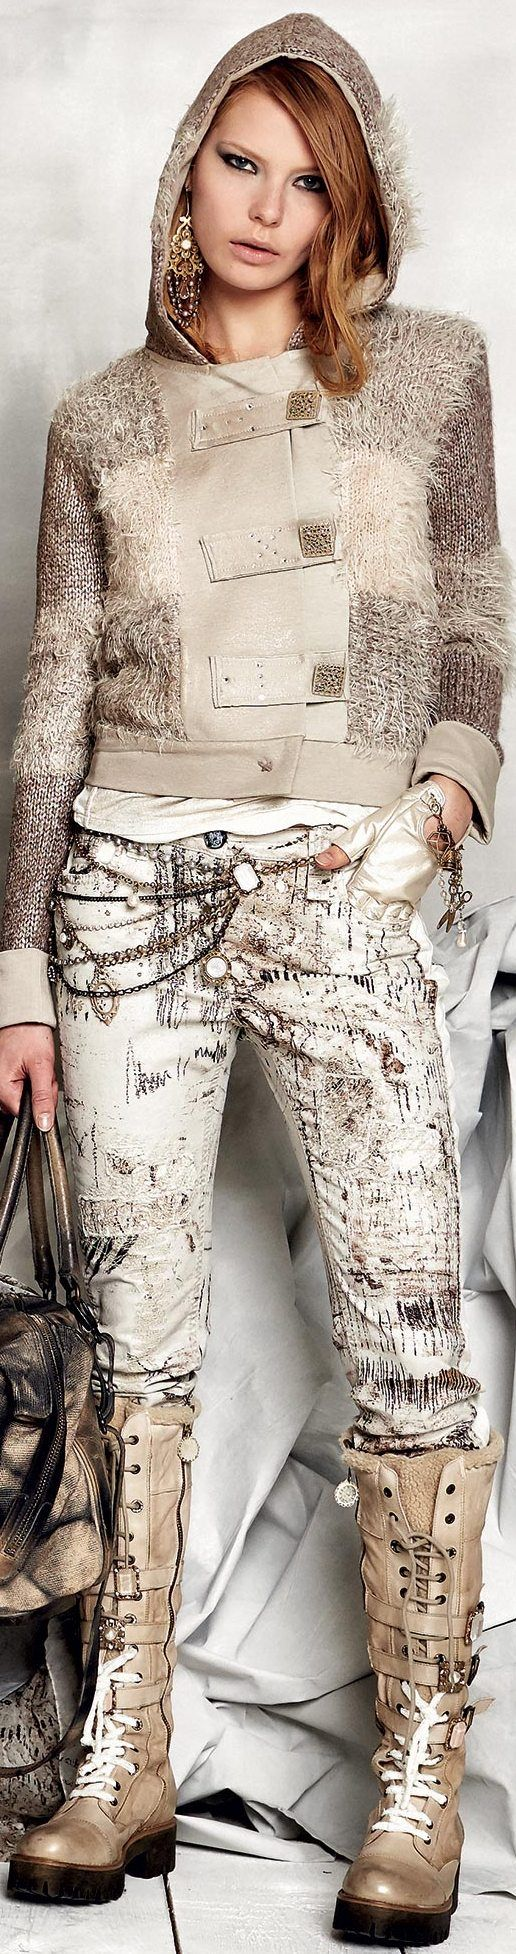 Elisa Cavaletti Fall / Winter 2015-16